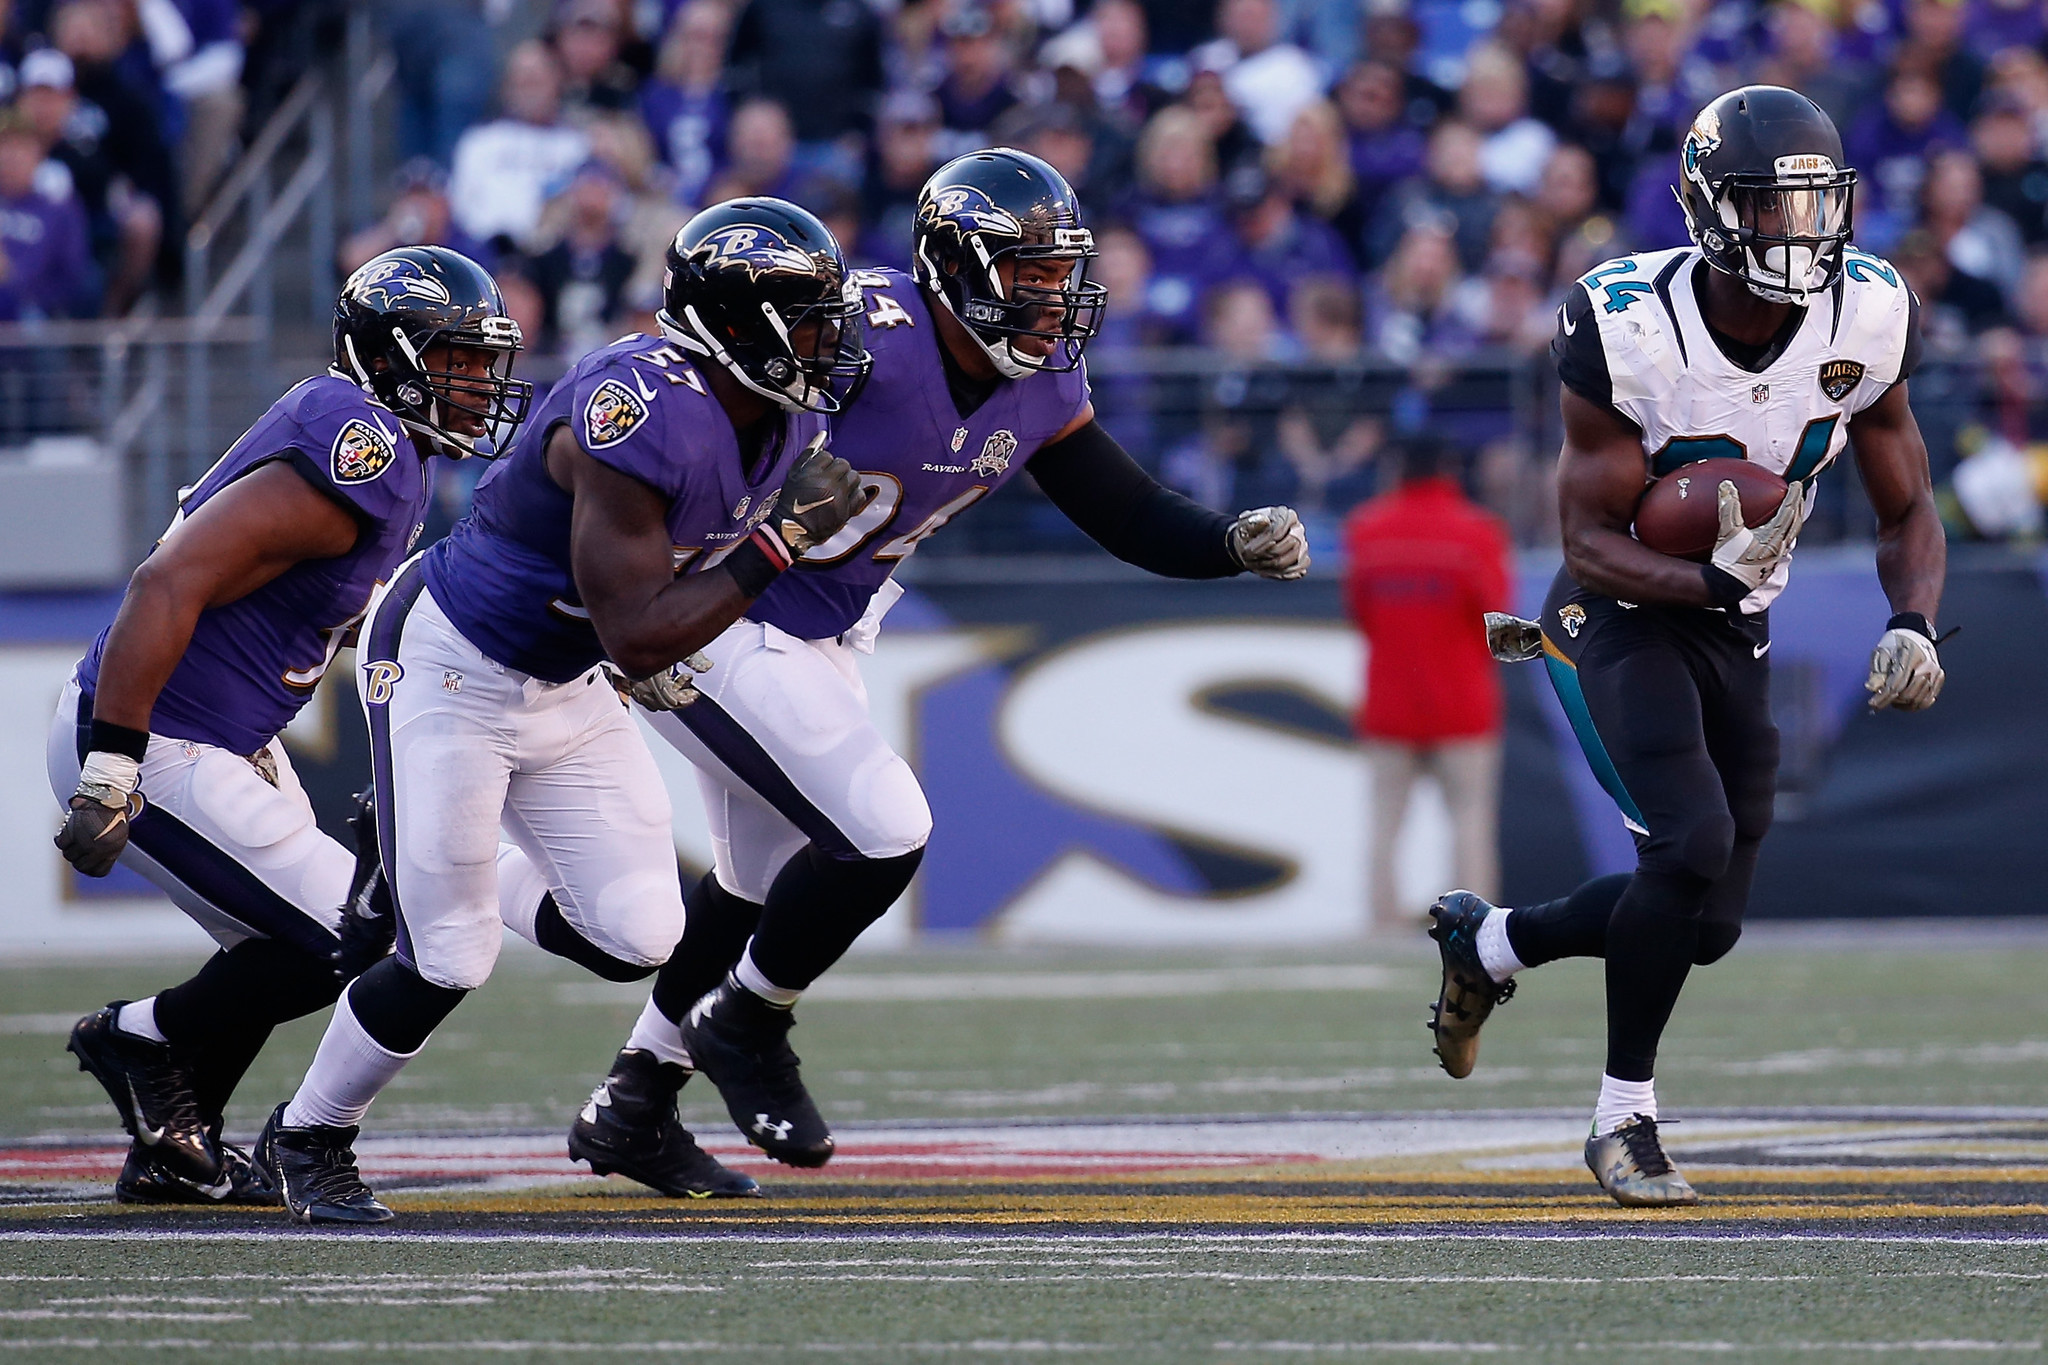 Bal-undefeated-ravens-vs-winless-jaguars-a-pick-em-matchup-in-week-3-20160919